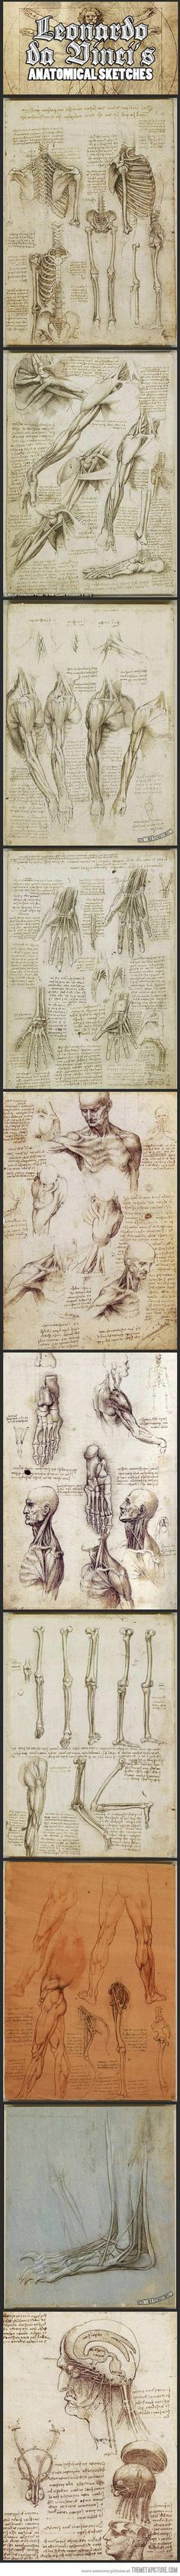 Leonardo da Vinci's anatomical sketches…the worlds best in my humble opinion - http://leonardodavincifacts.co.uk